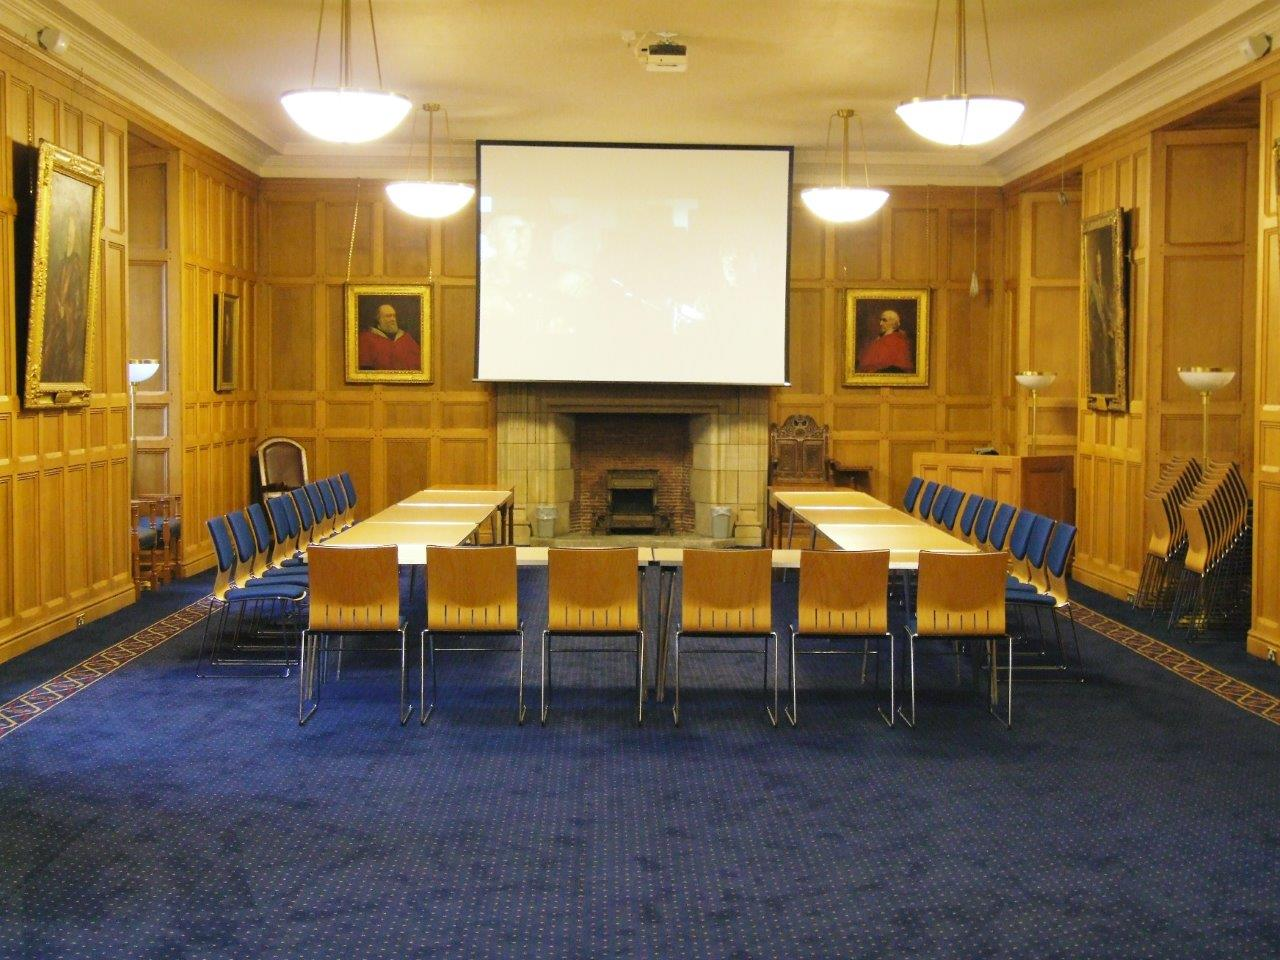 Parliament Hall Conferences  Accommodation Conferences and Events